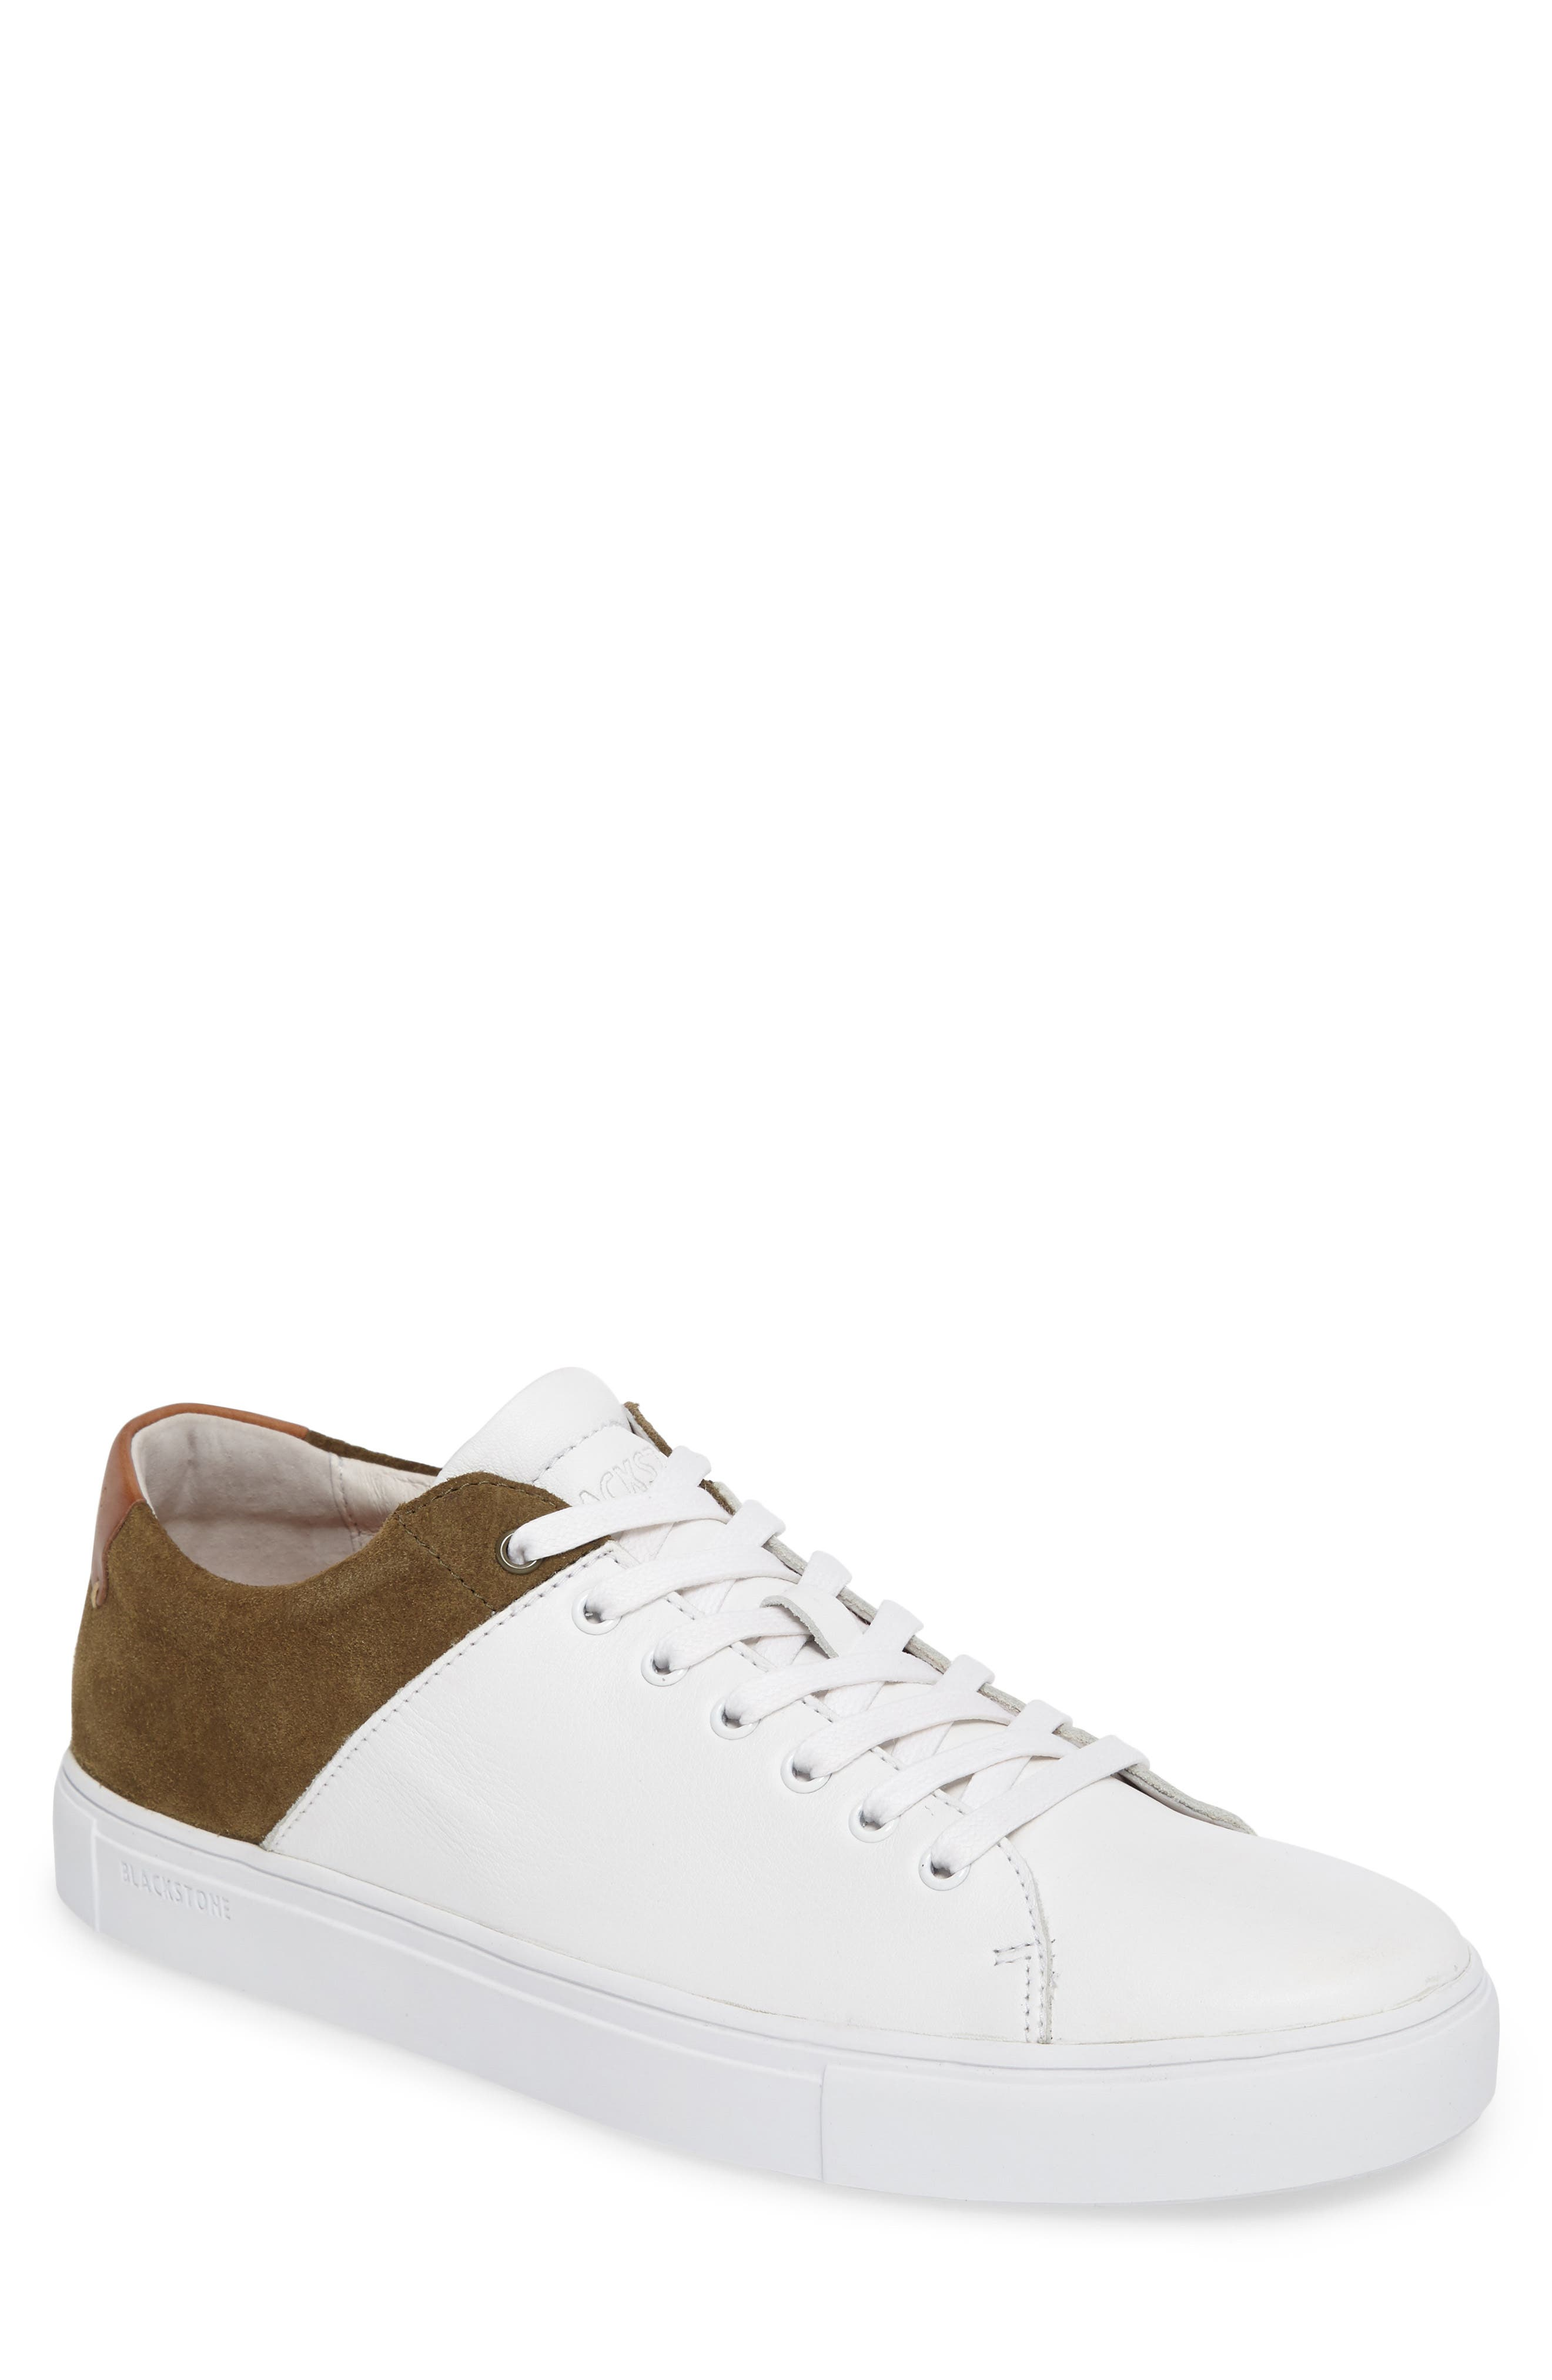 NM03 Two-Tone Sneaker,                         Main,                         color, 195